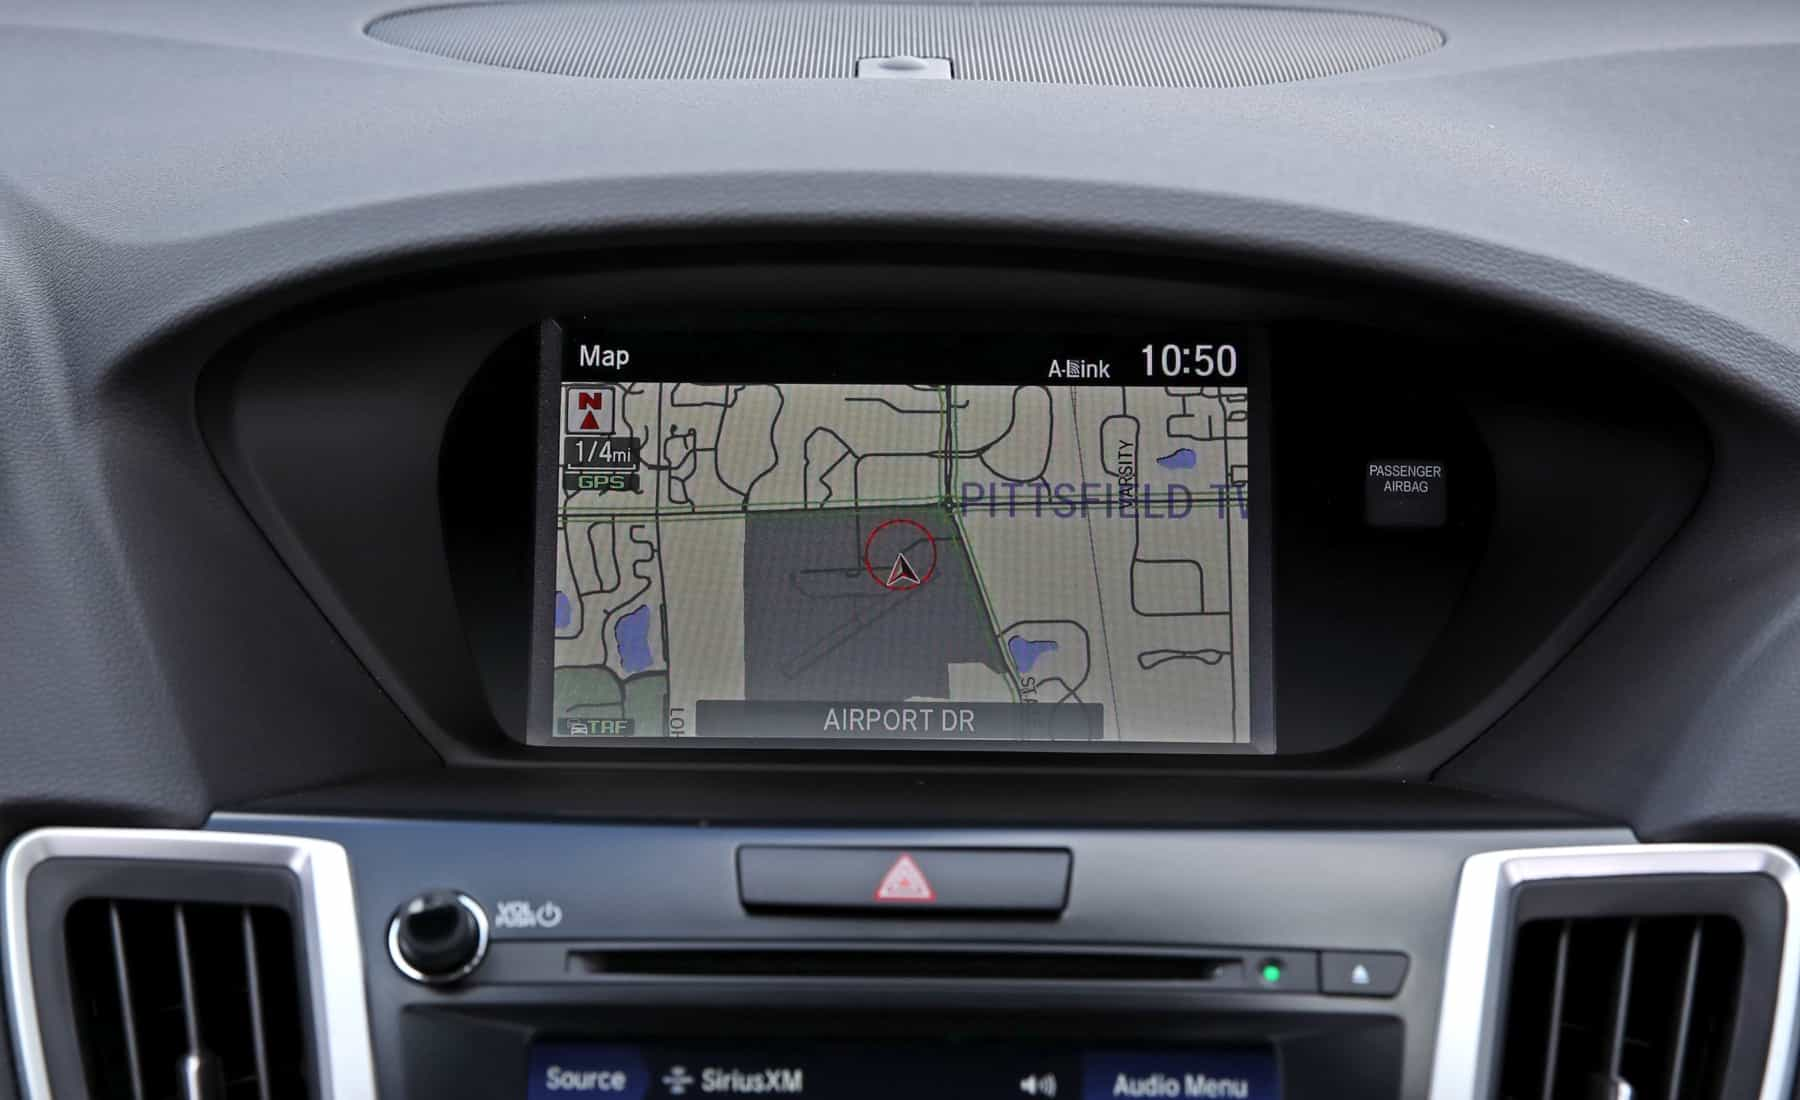 2018 Acura TLX Interior View Gps Maps (View 13 of 46)